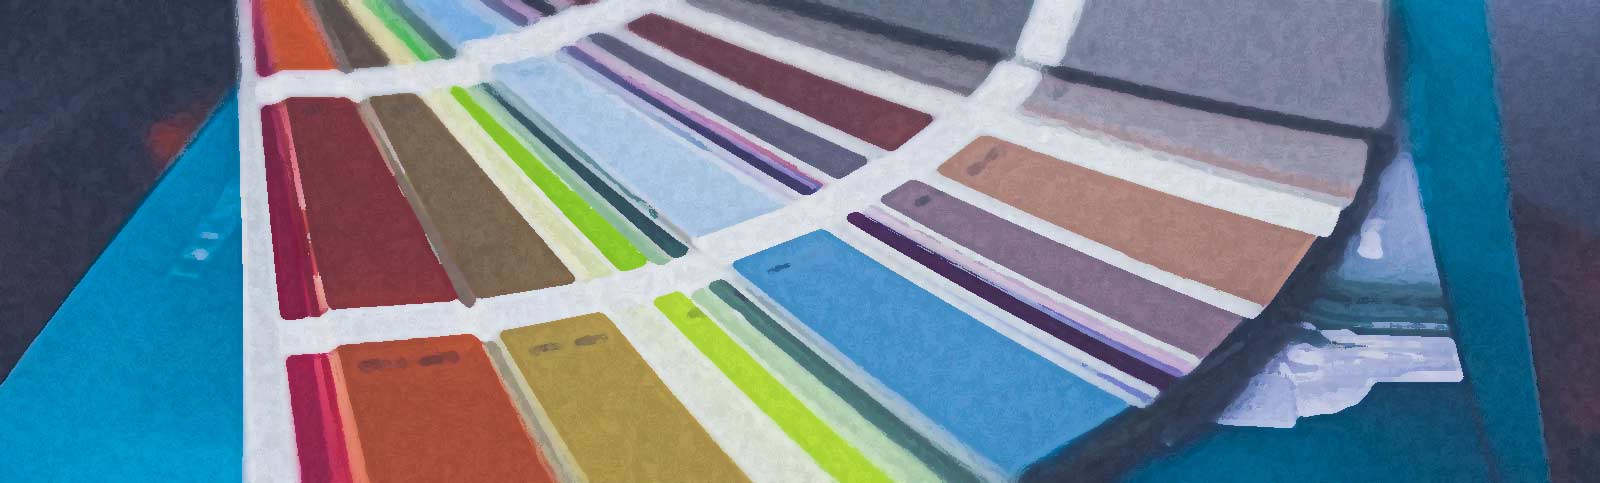 Planning a Colour Scheme for Your Home